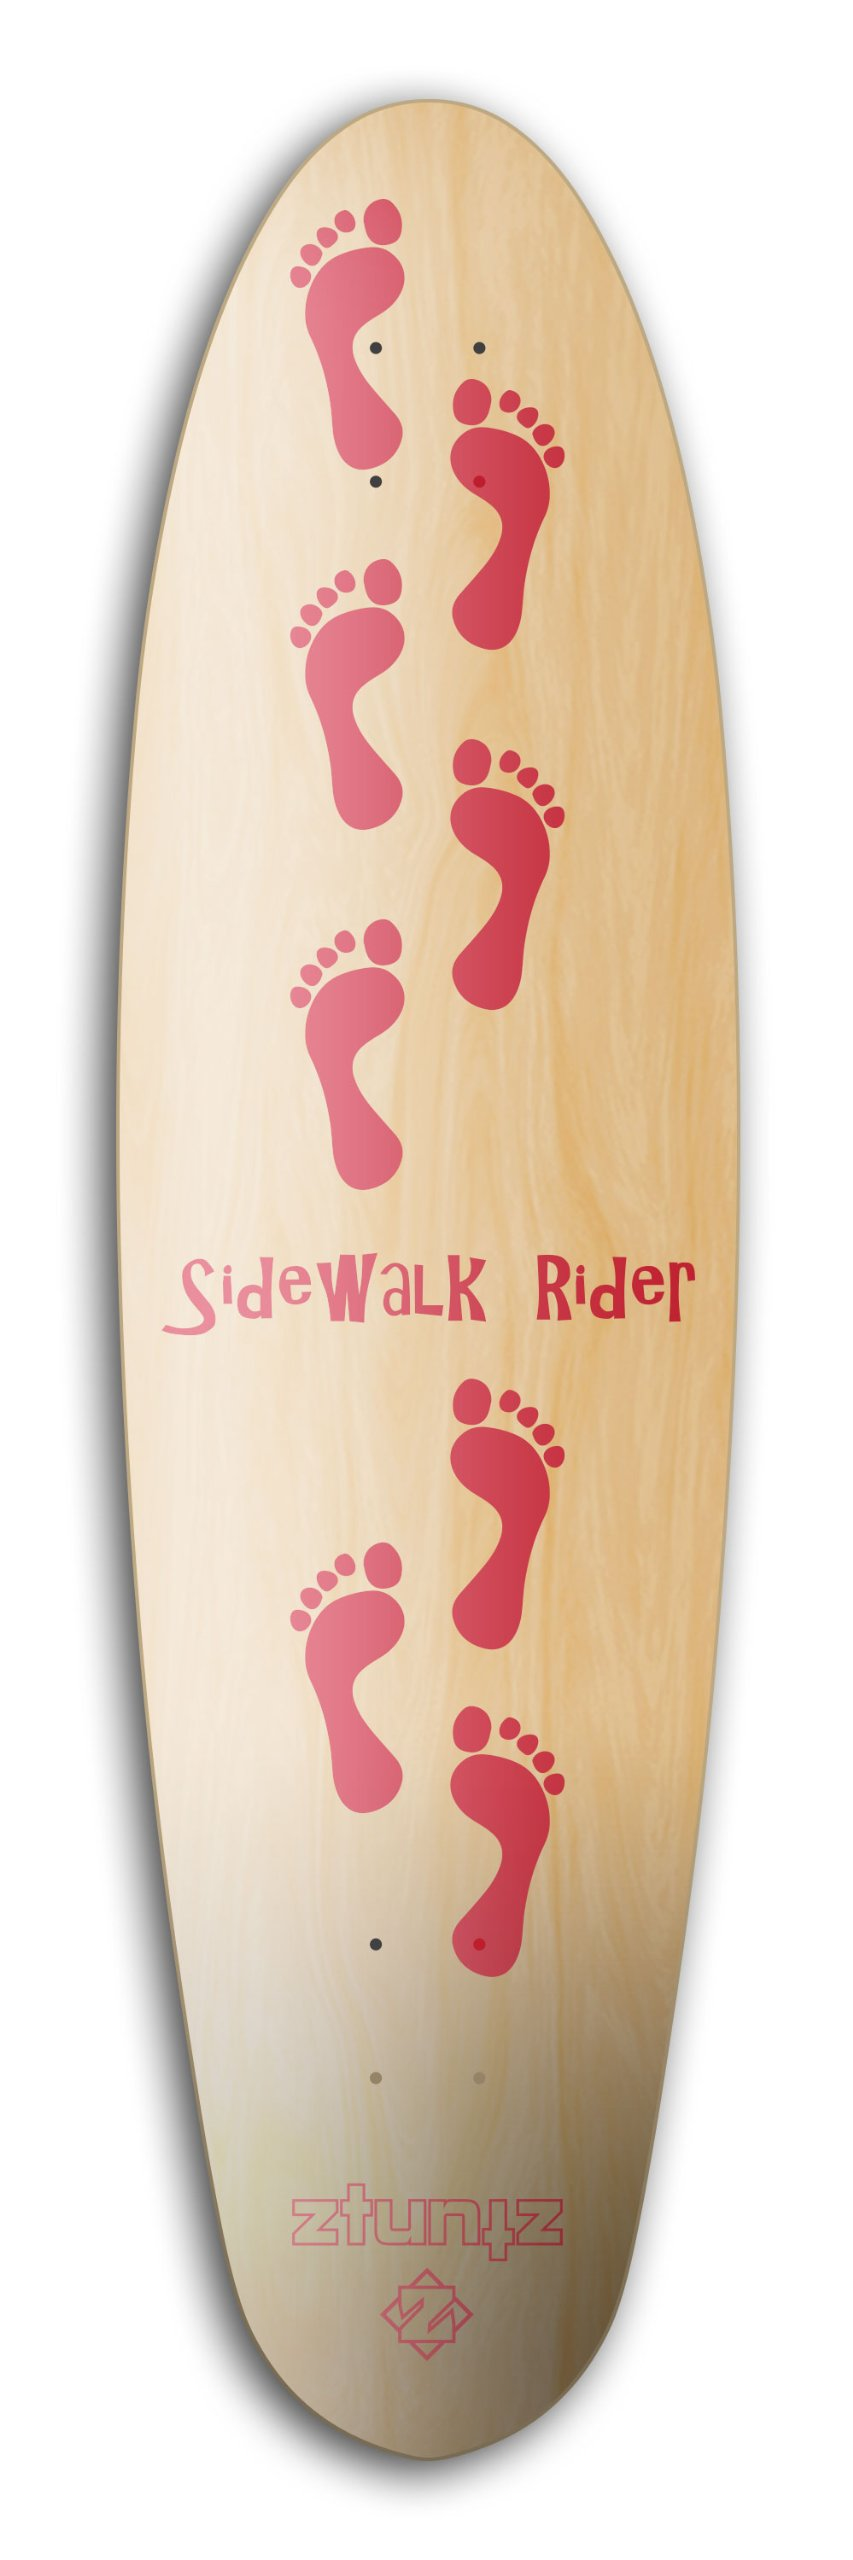 ZtuntZ Skateboards Sidewalk Rider 8 Steps Long Skateboard Deck, 9.65 x 37-Inch, Red/Natural